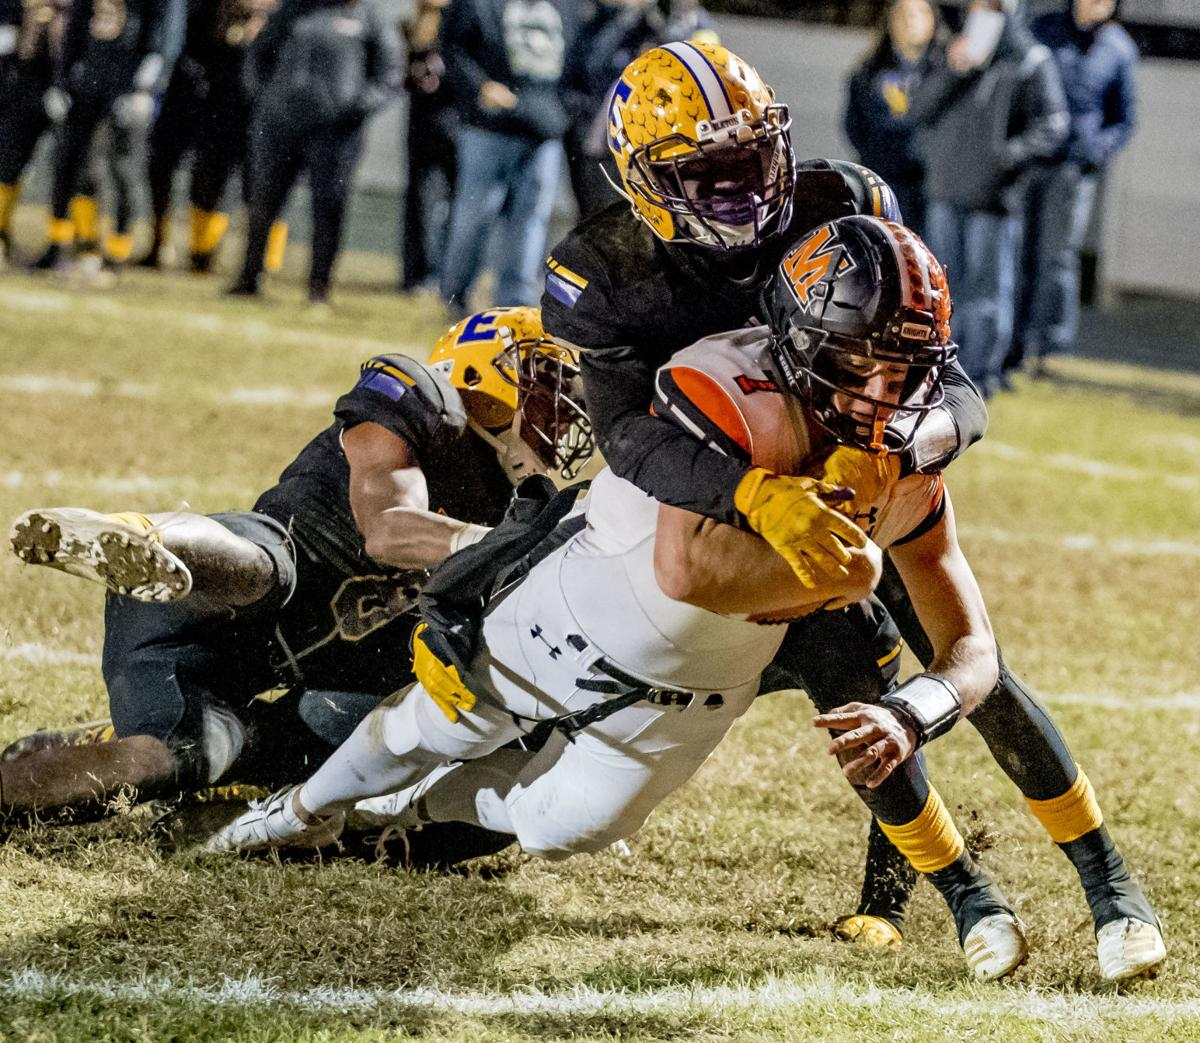 2A Football State Semifinals: Elkton vs. Middletown